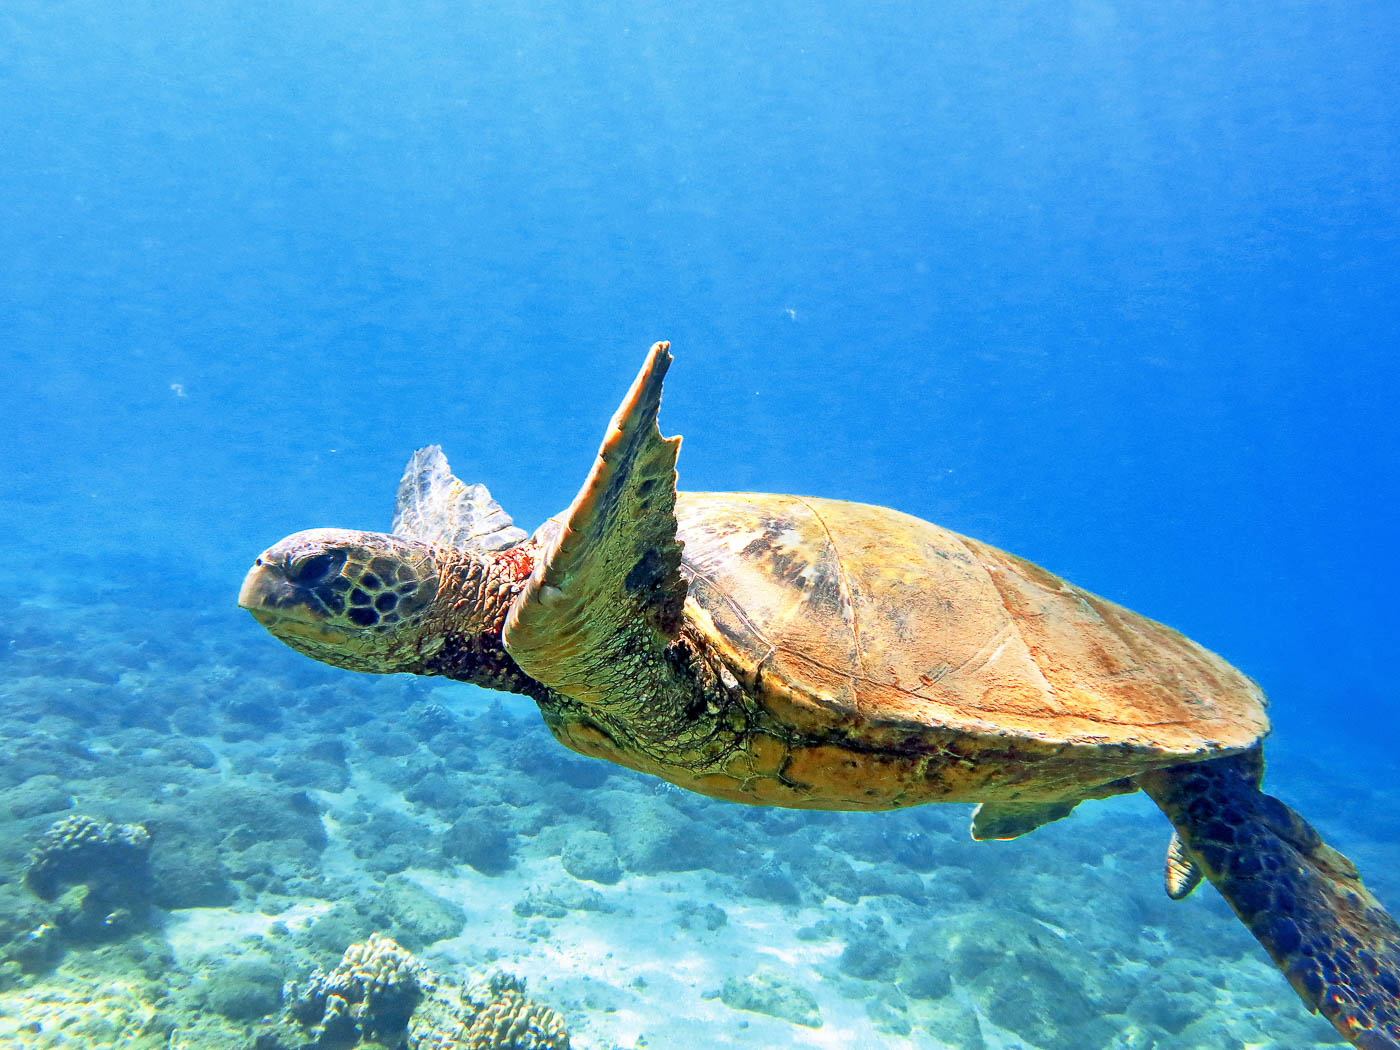 hawaiian green sea turtles - maui magic snorkel